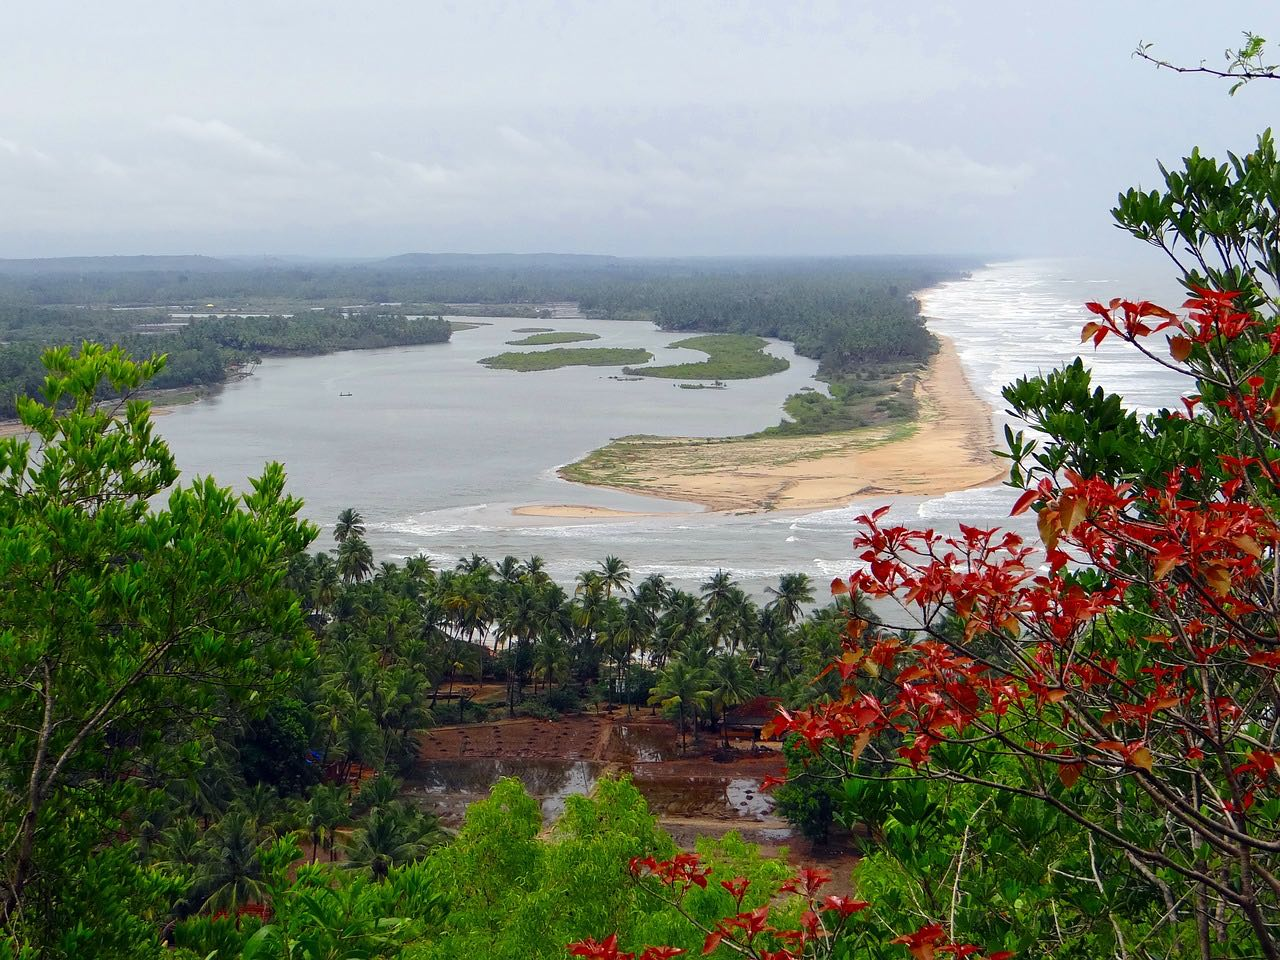 arabian-sea_sumana river_karnataka_PD